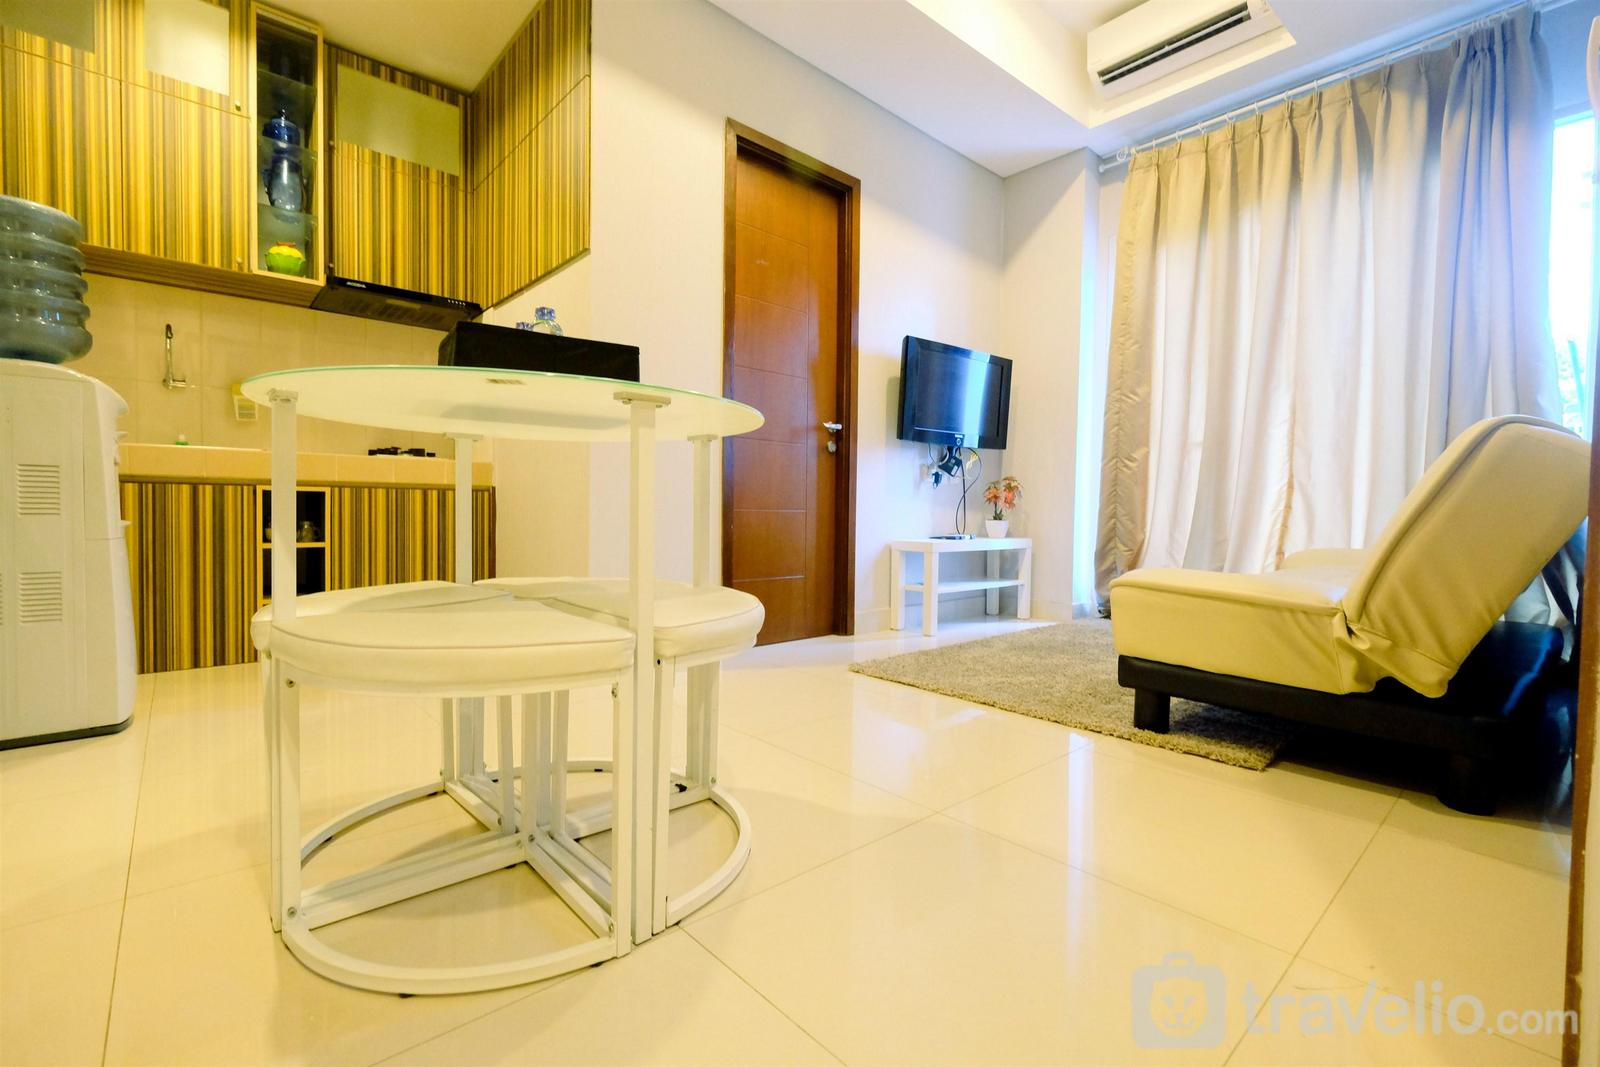 Capitol Park Residence - Modern 2BR Capitol Park Residence Apartment By Travelio